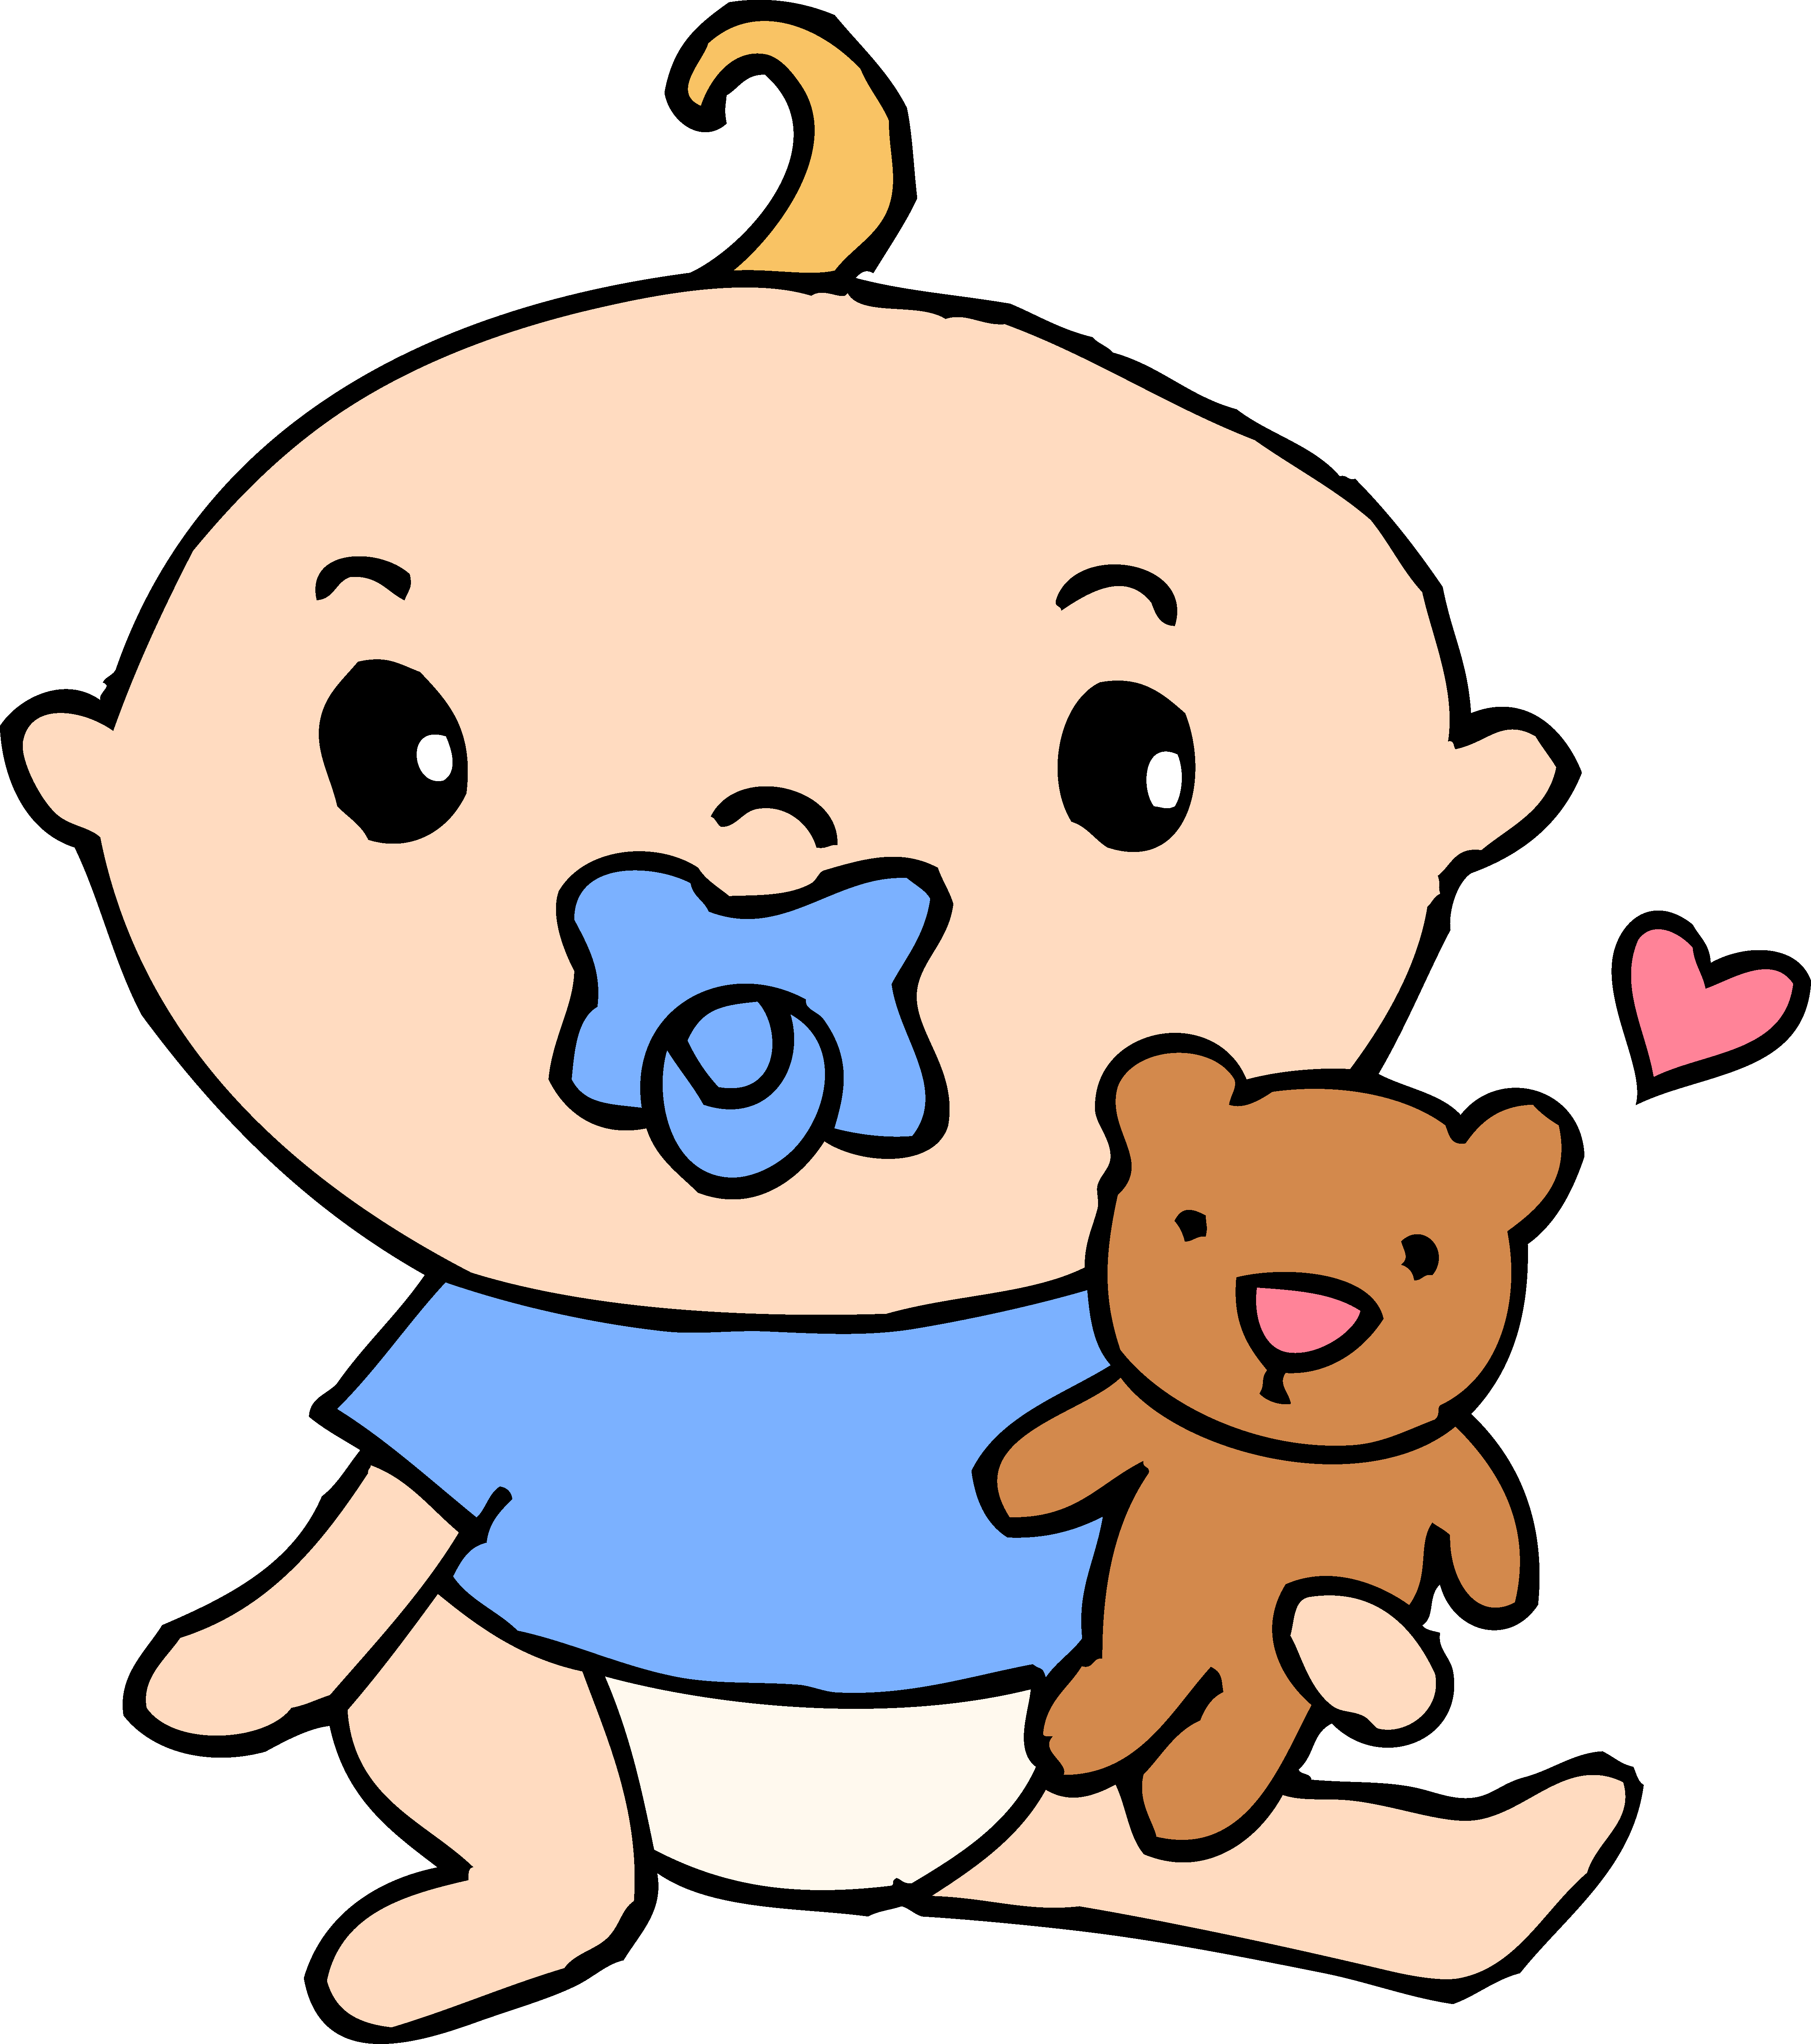 4755x5367 Baby Superhero Clipart Free Clipart Images